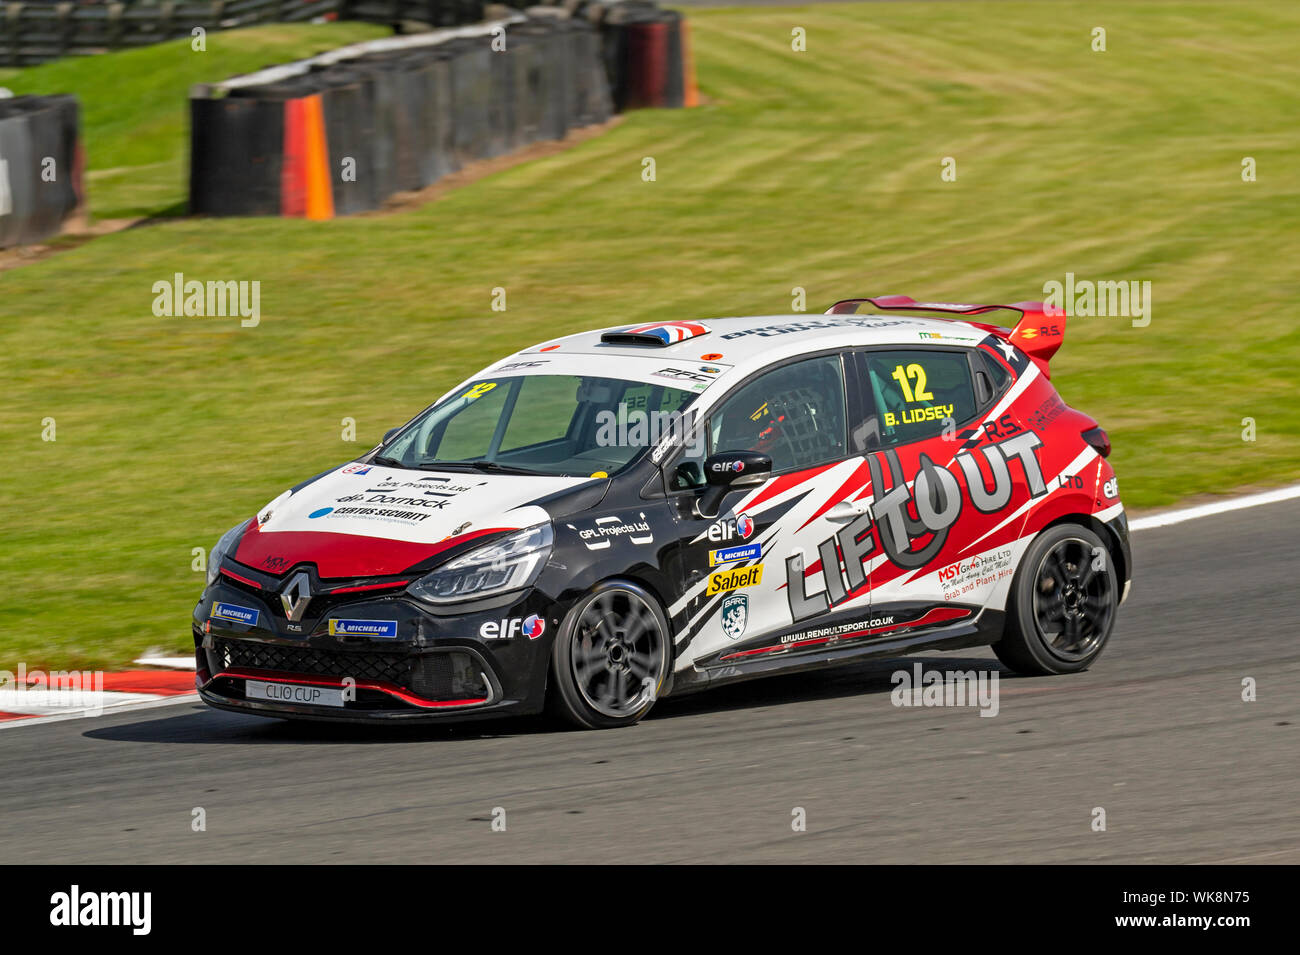 Renault Clio Stock Photos Renault Clio Stock Images Alamy